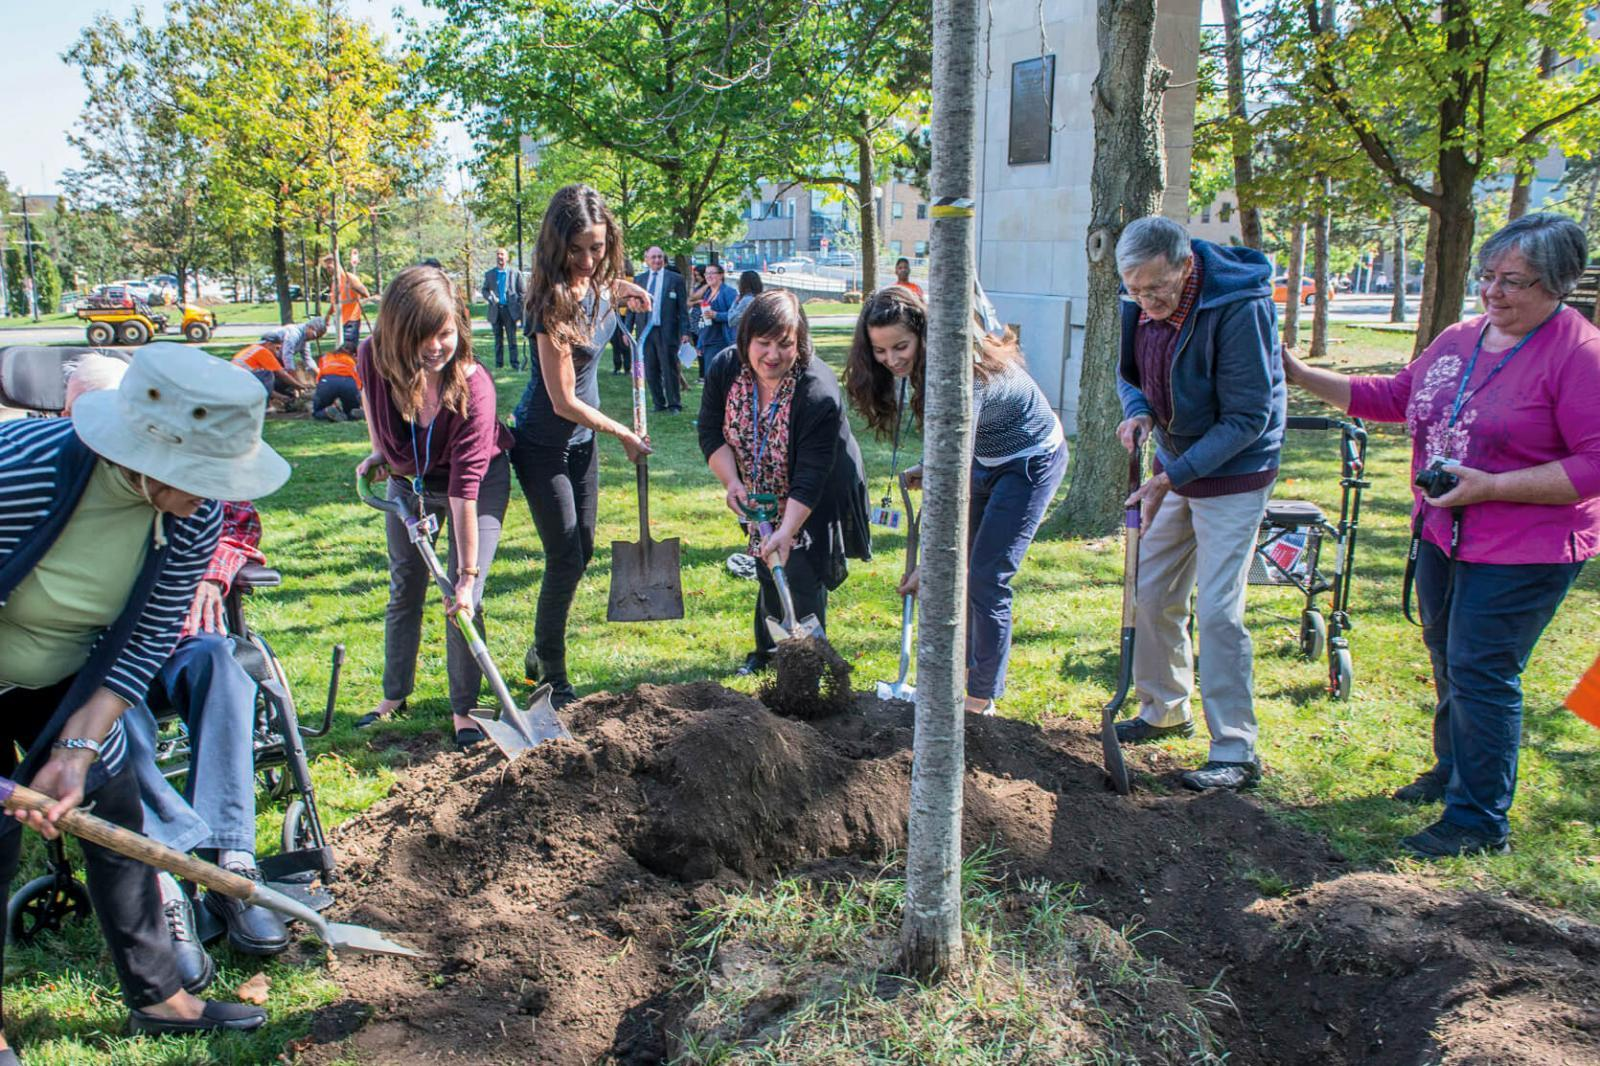 Sunnybrook Hospital in Toronto celebrated National Tree Day by planting trees throughout the property.